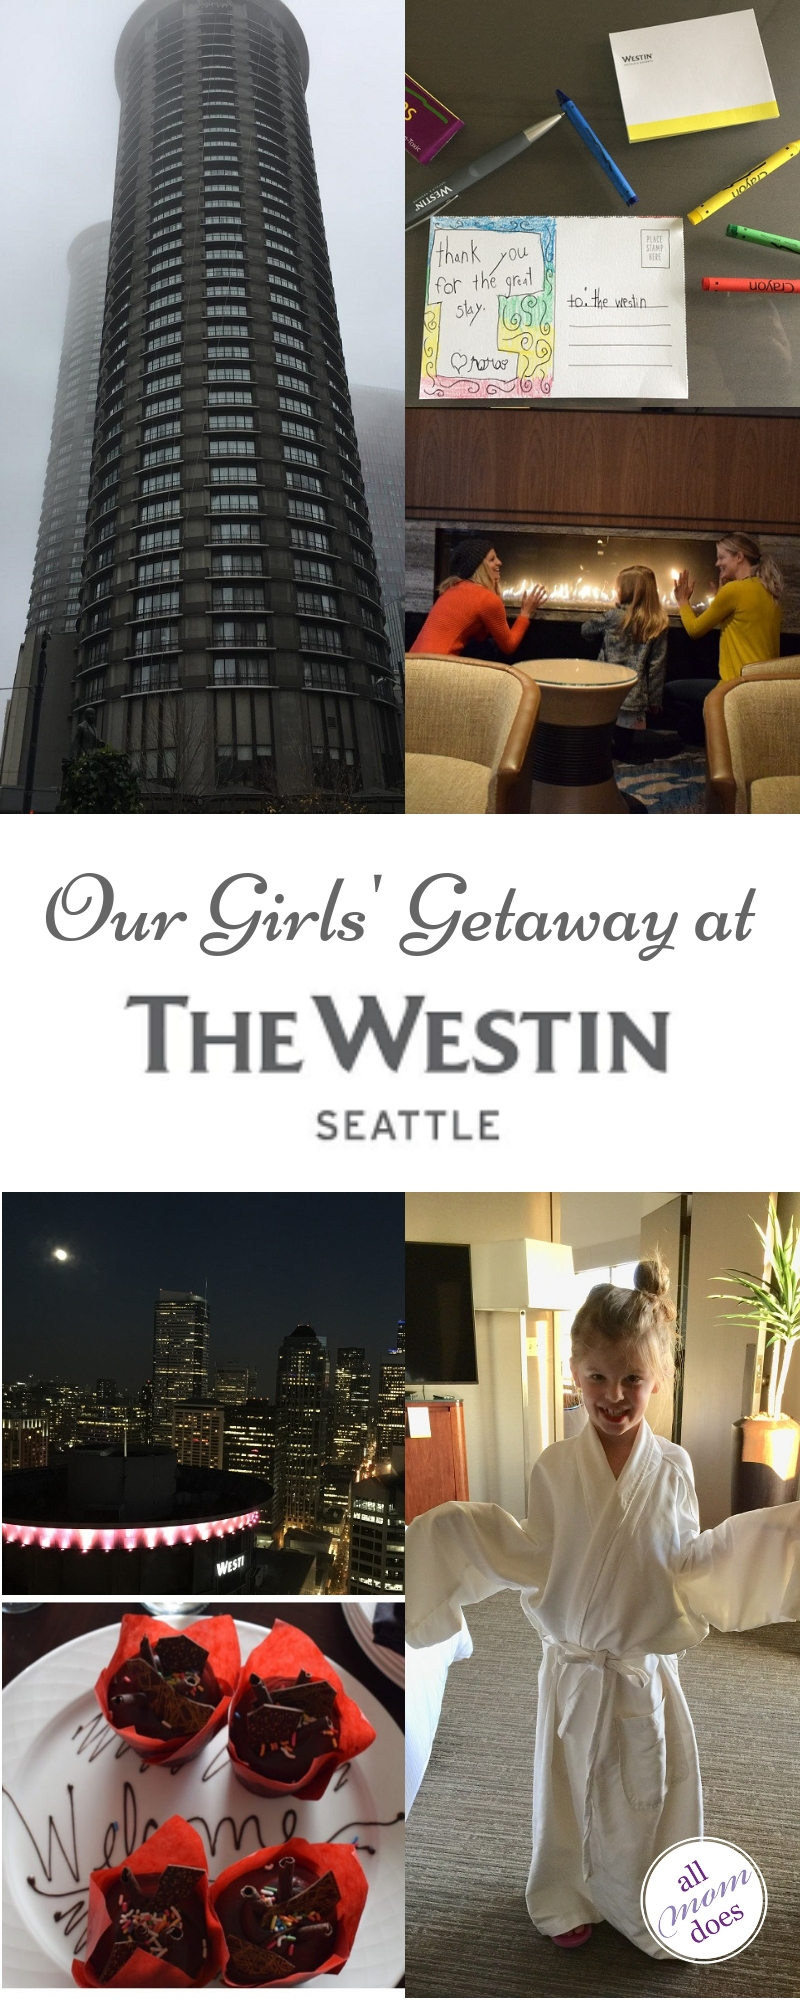 Is The Westin Seattle a kid friendly hotel? Read this blogger's honest review! #seattle